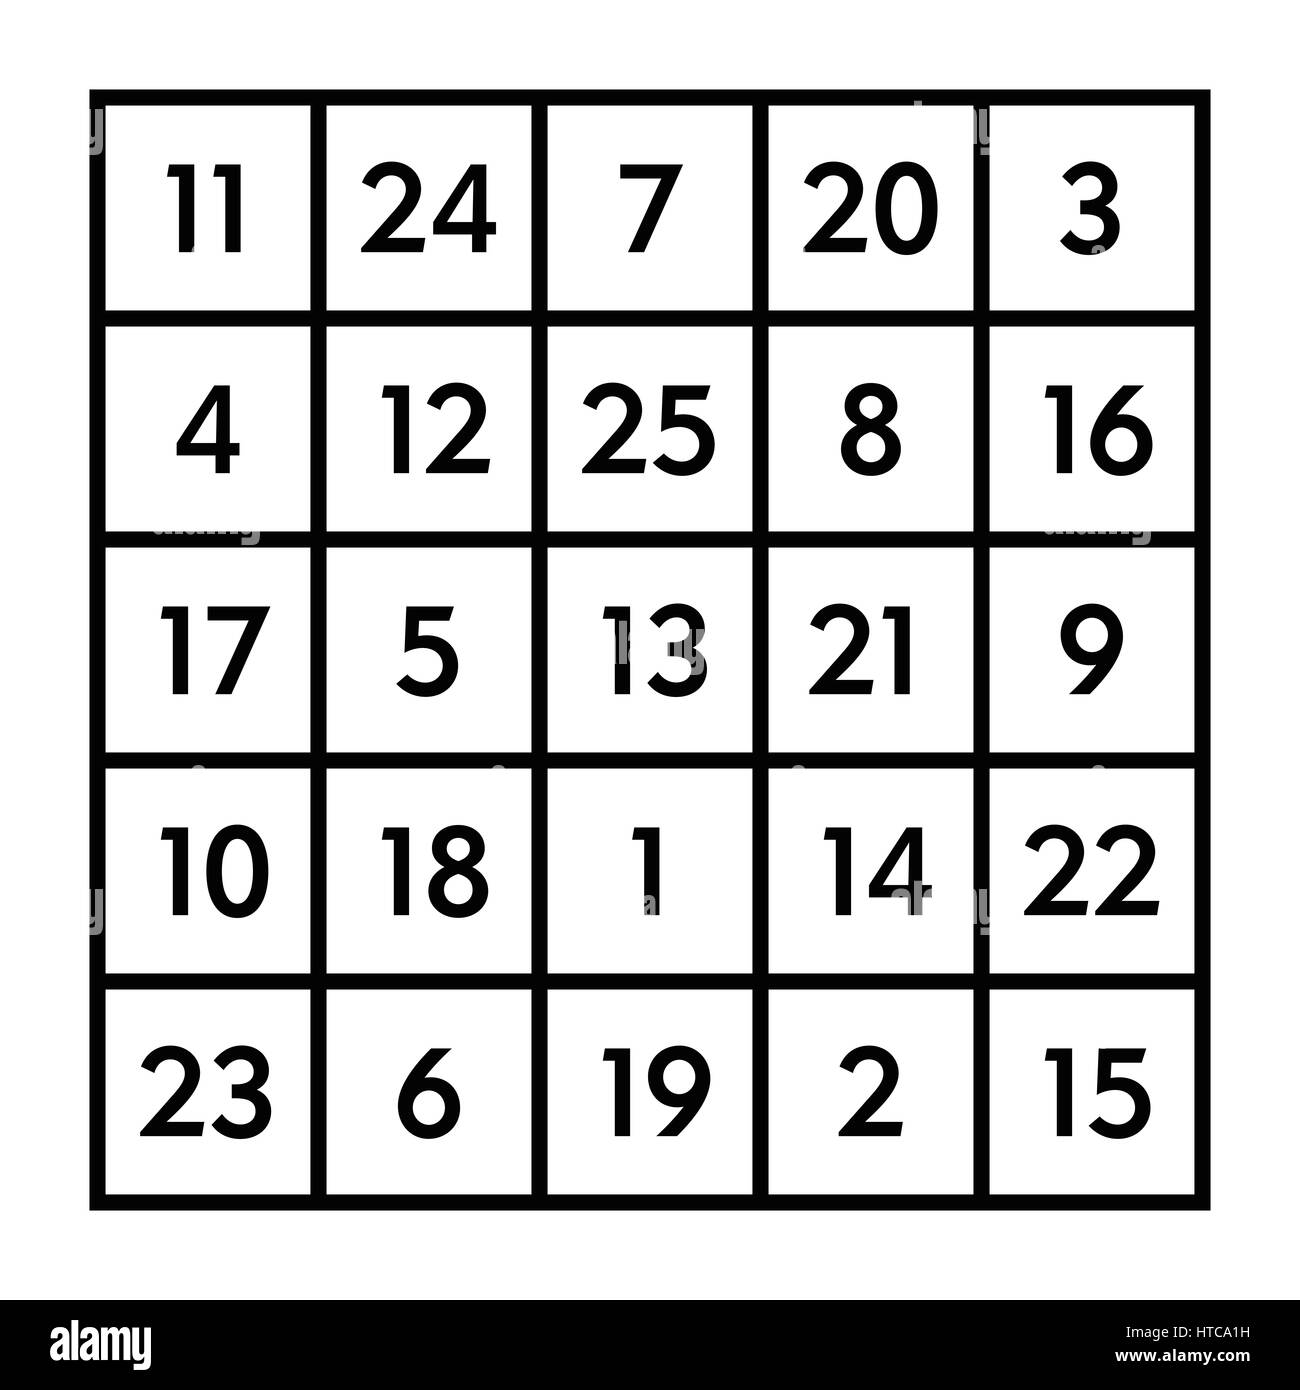 5x5 magic square of order 5 of astrological planet mars with magic 5x5 magic square of order 5 of astrological planet mars with magic constant 65 biocorpaavc Choice Image